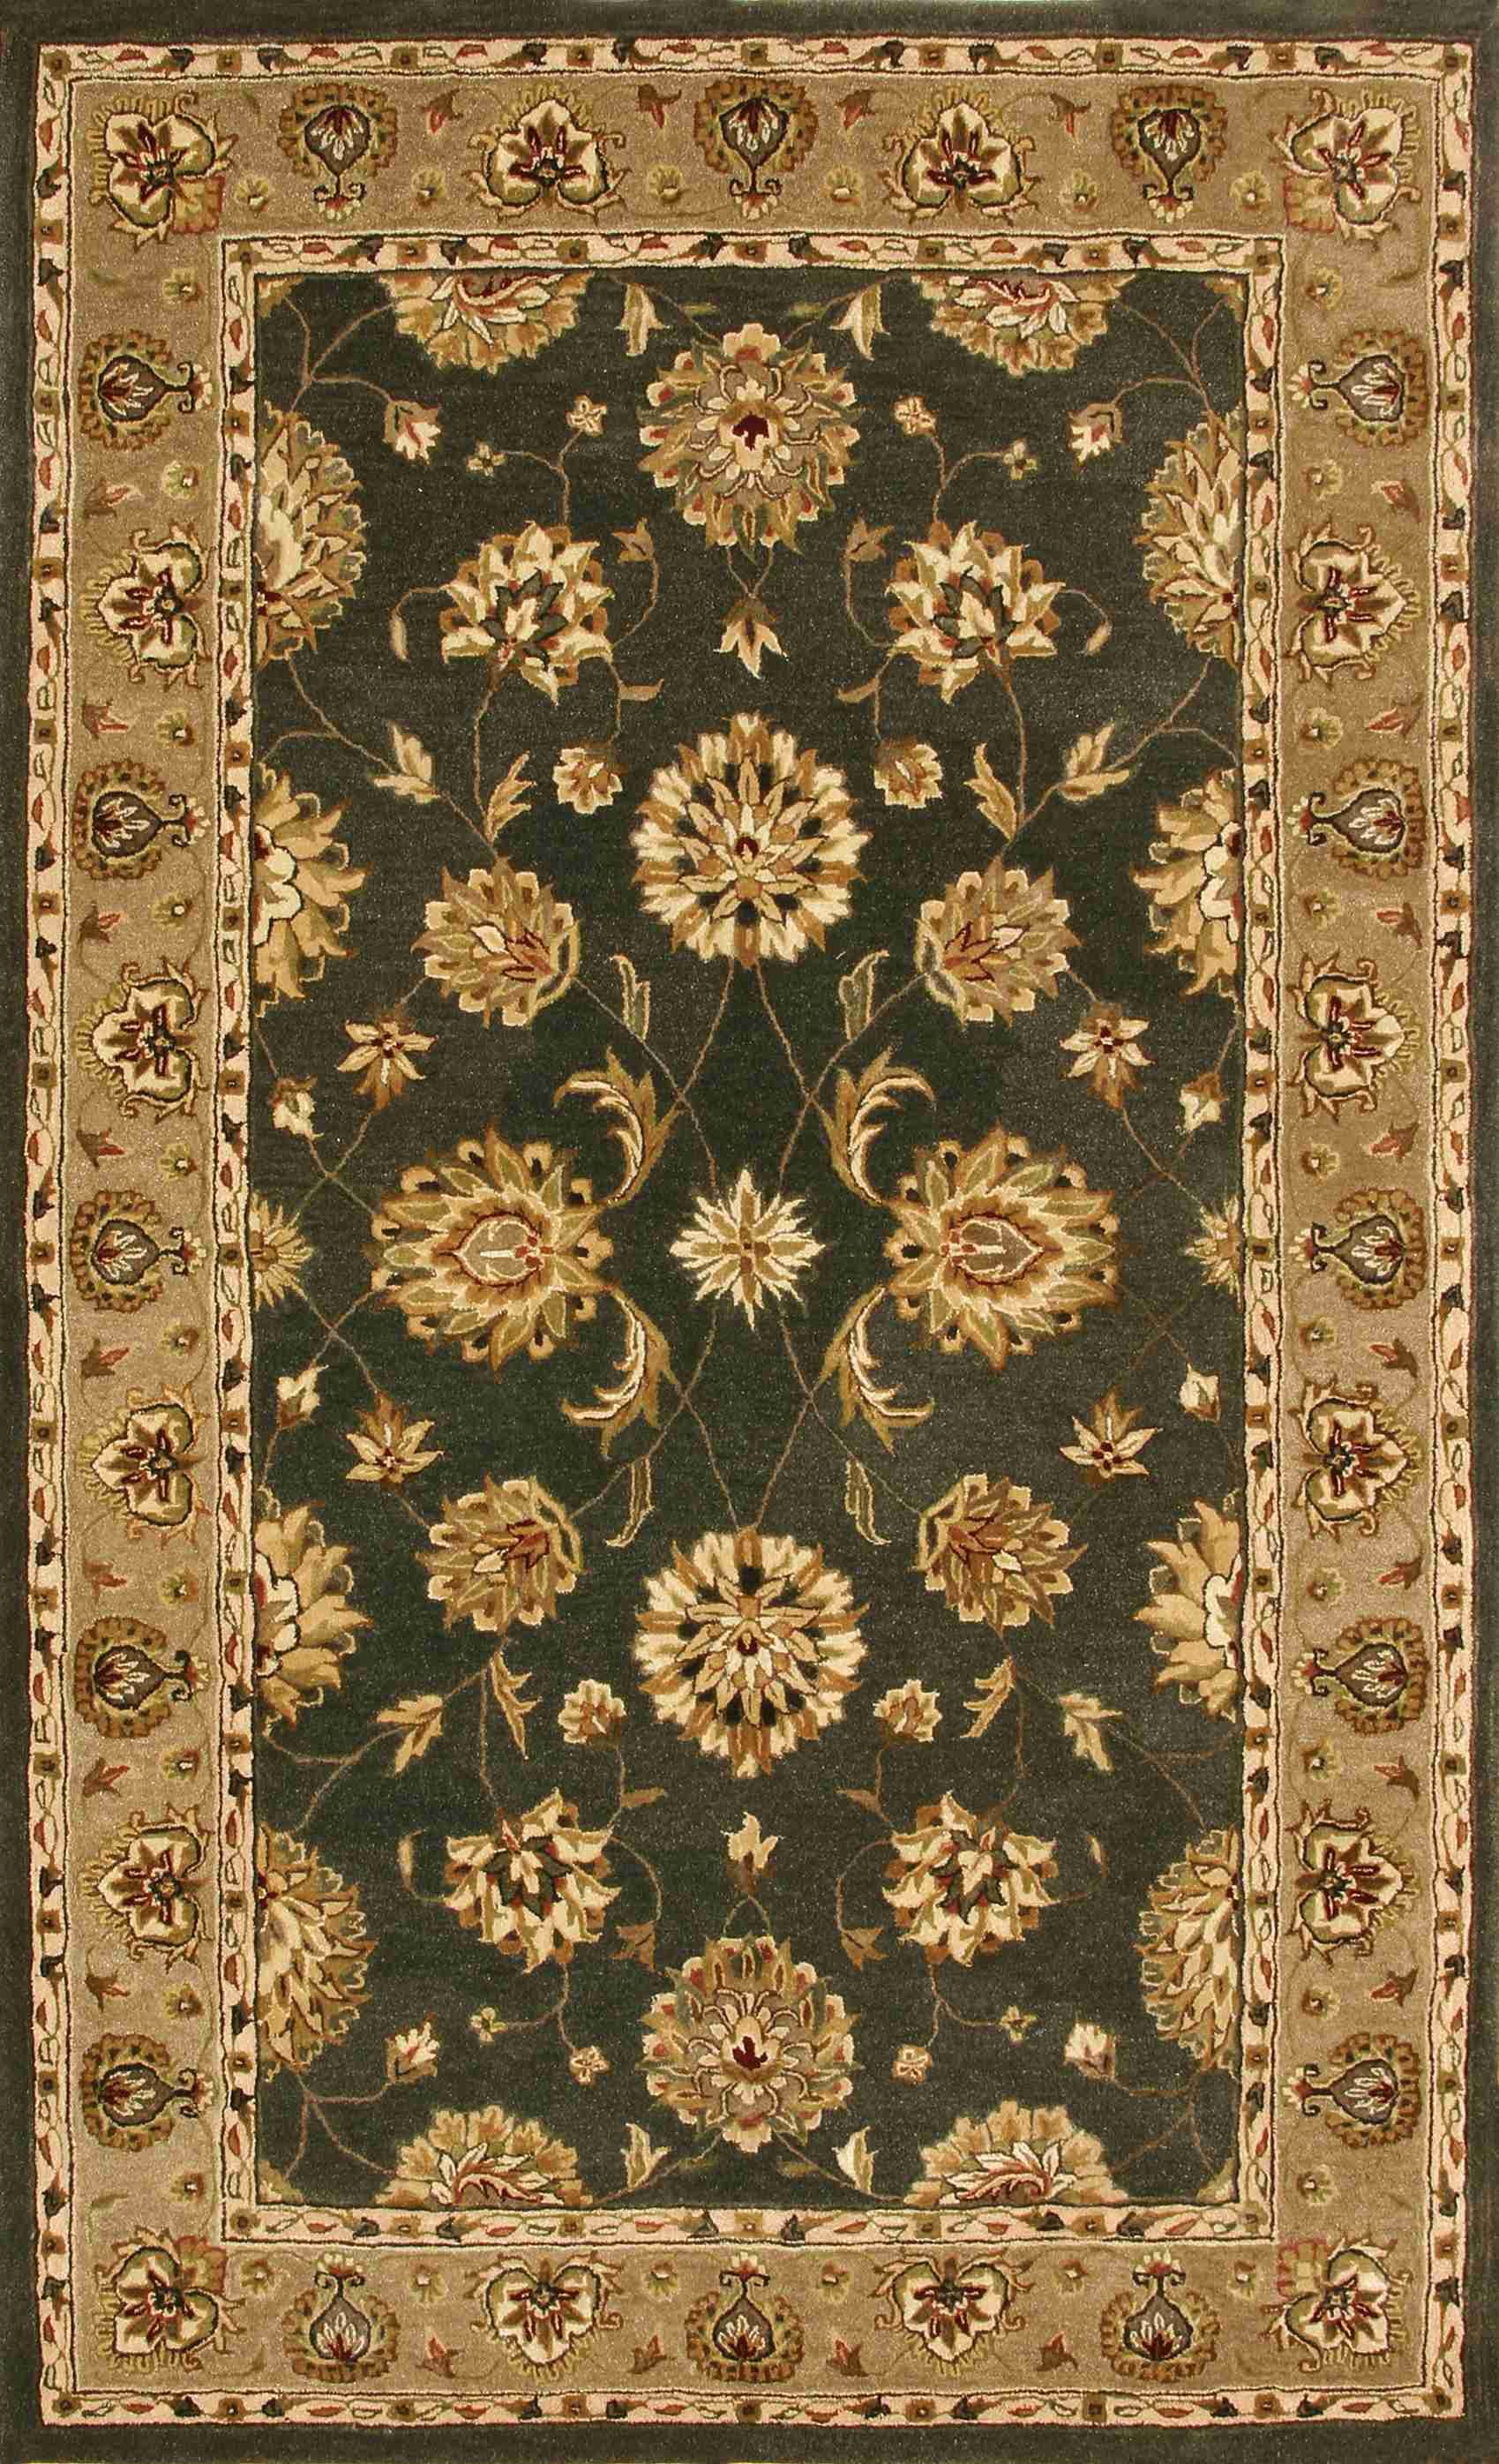 Dynamic Rugs Jewel Classic Green/d. Linen 70230 Area Rug